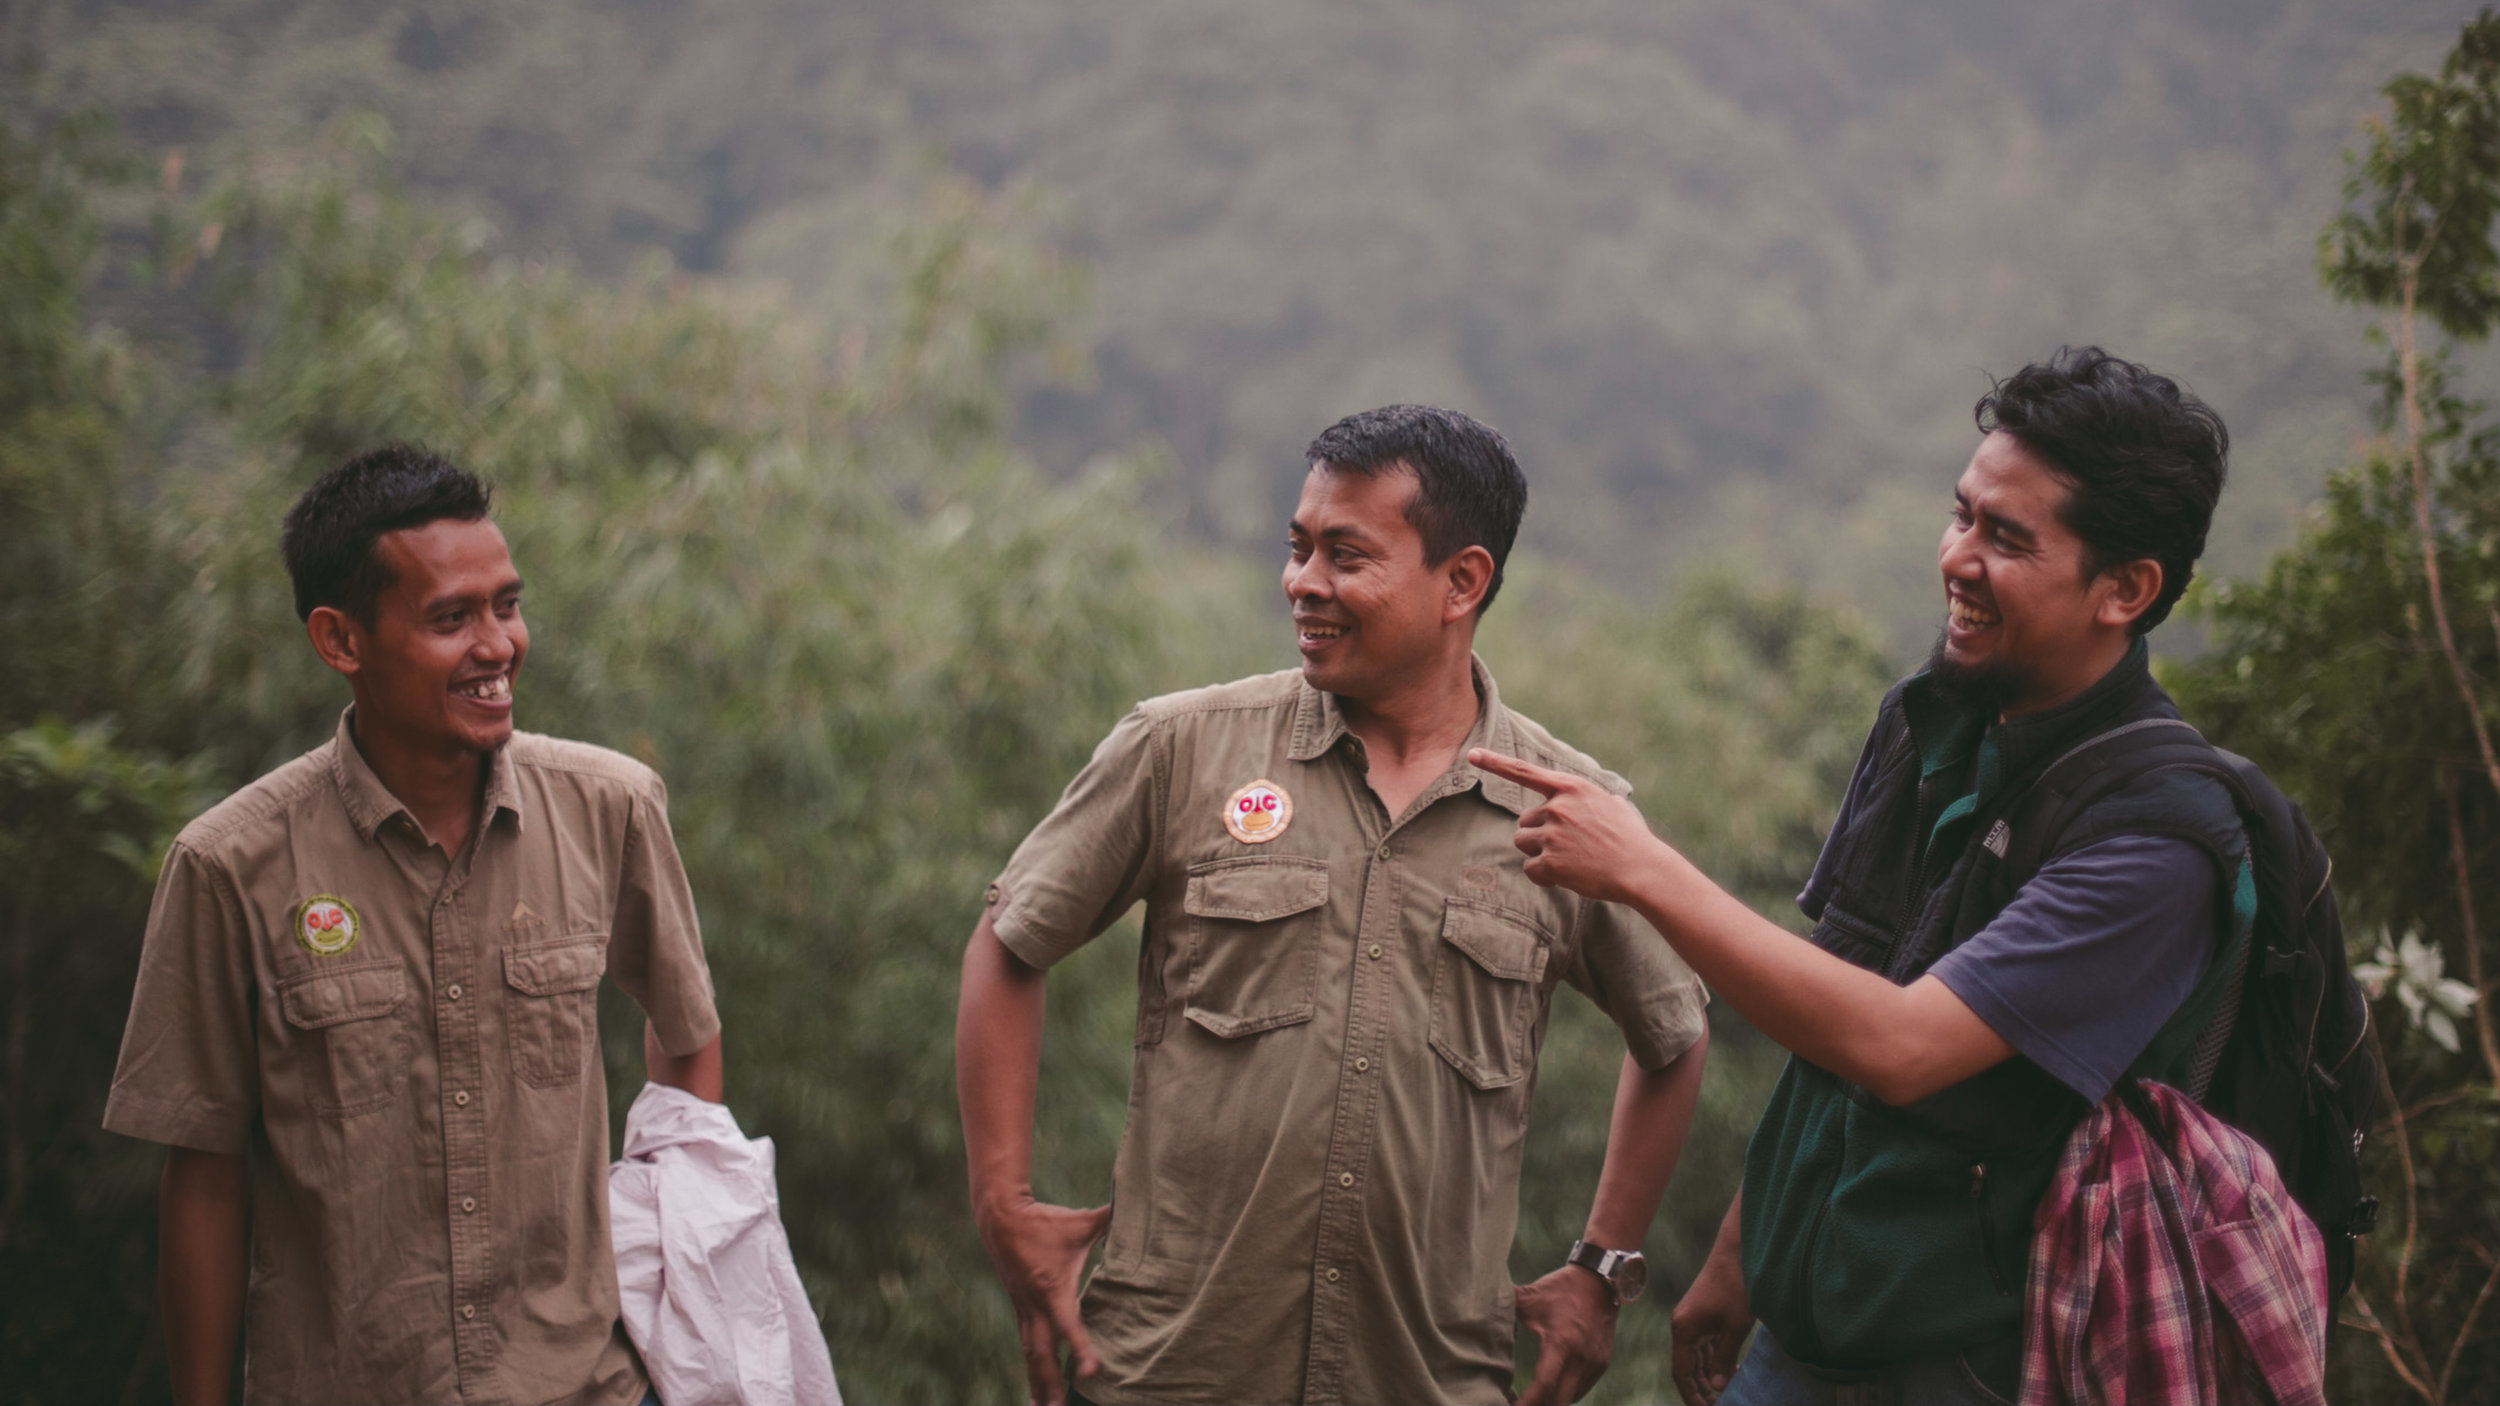 OIC staff members laughing after a hawk attacked their drone while scouting for illegal encroachment on the border of the Sumatran Wildlife Sanctuary.